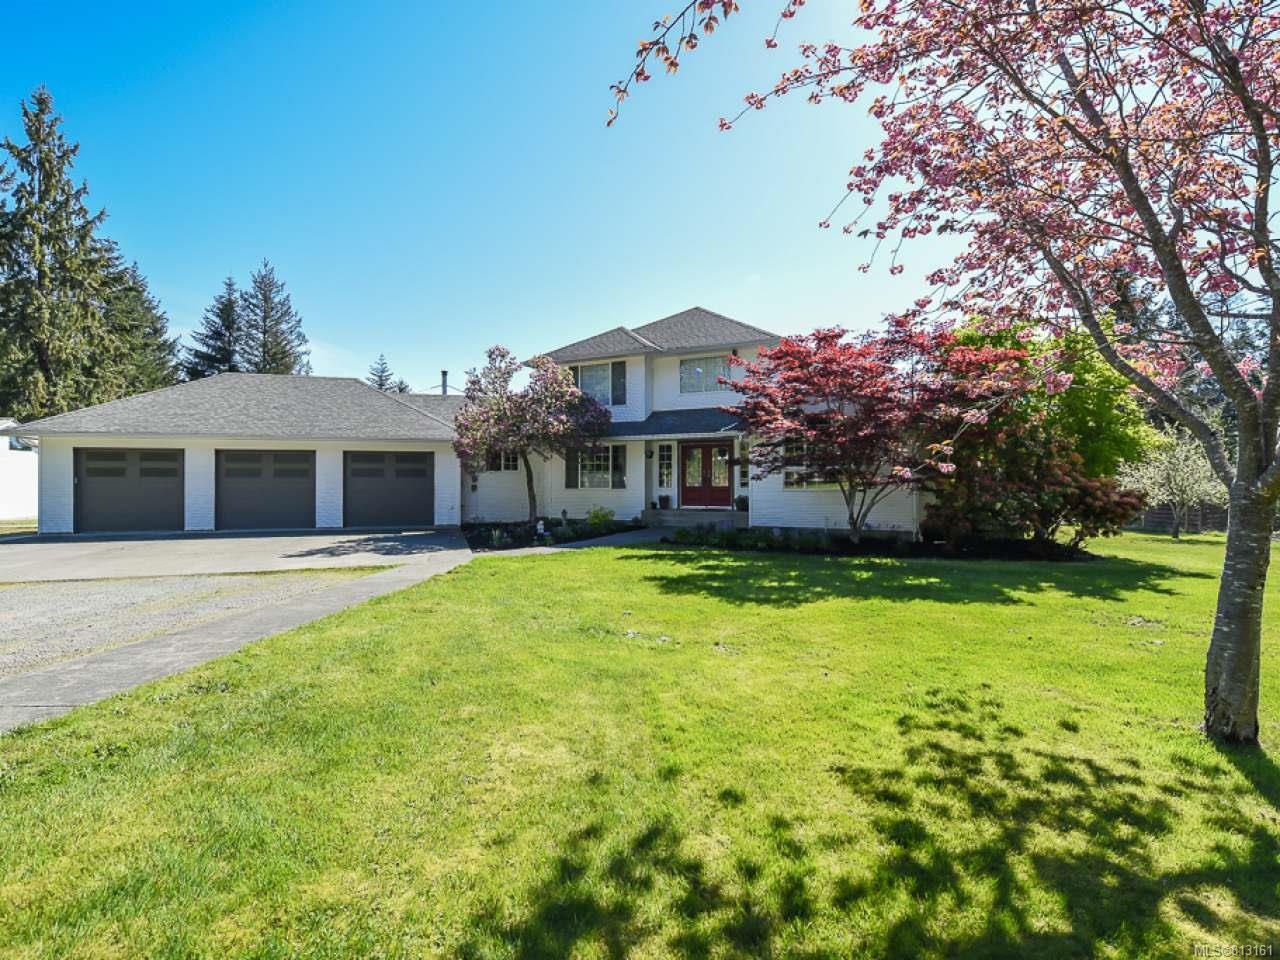 Main Photo: 2096 May Rd in COMOX: CV Comox Peninsula House for sale (Comox Valley)  : MLS®# 813161